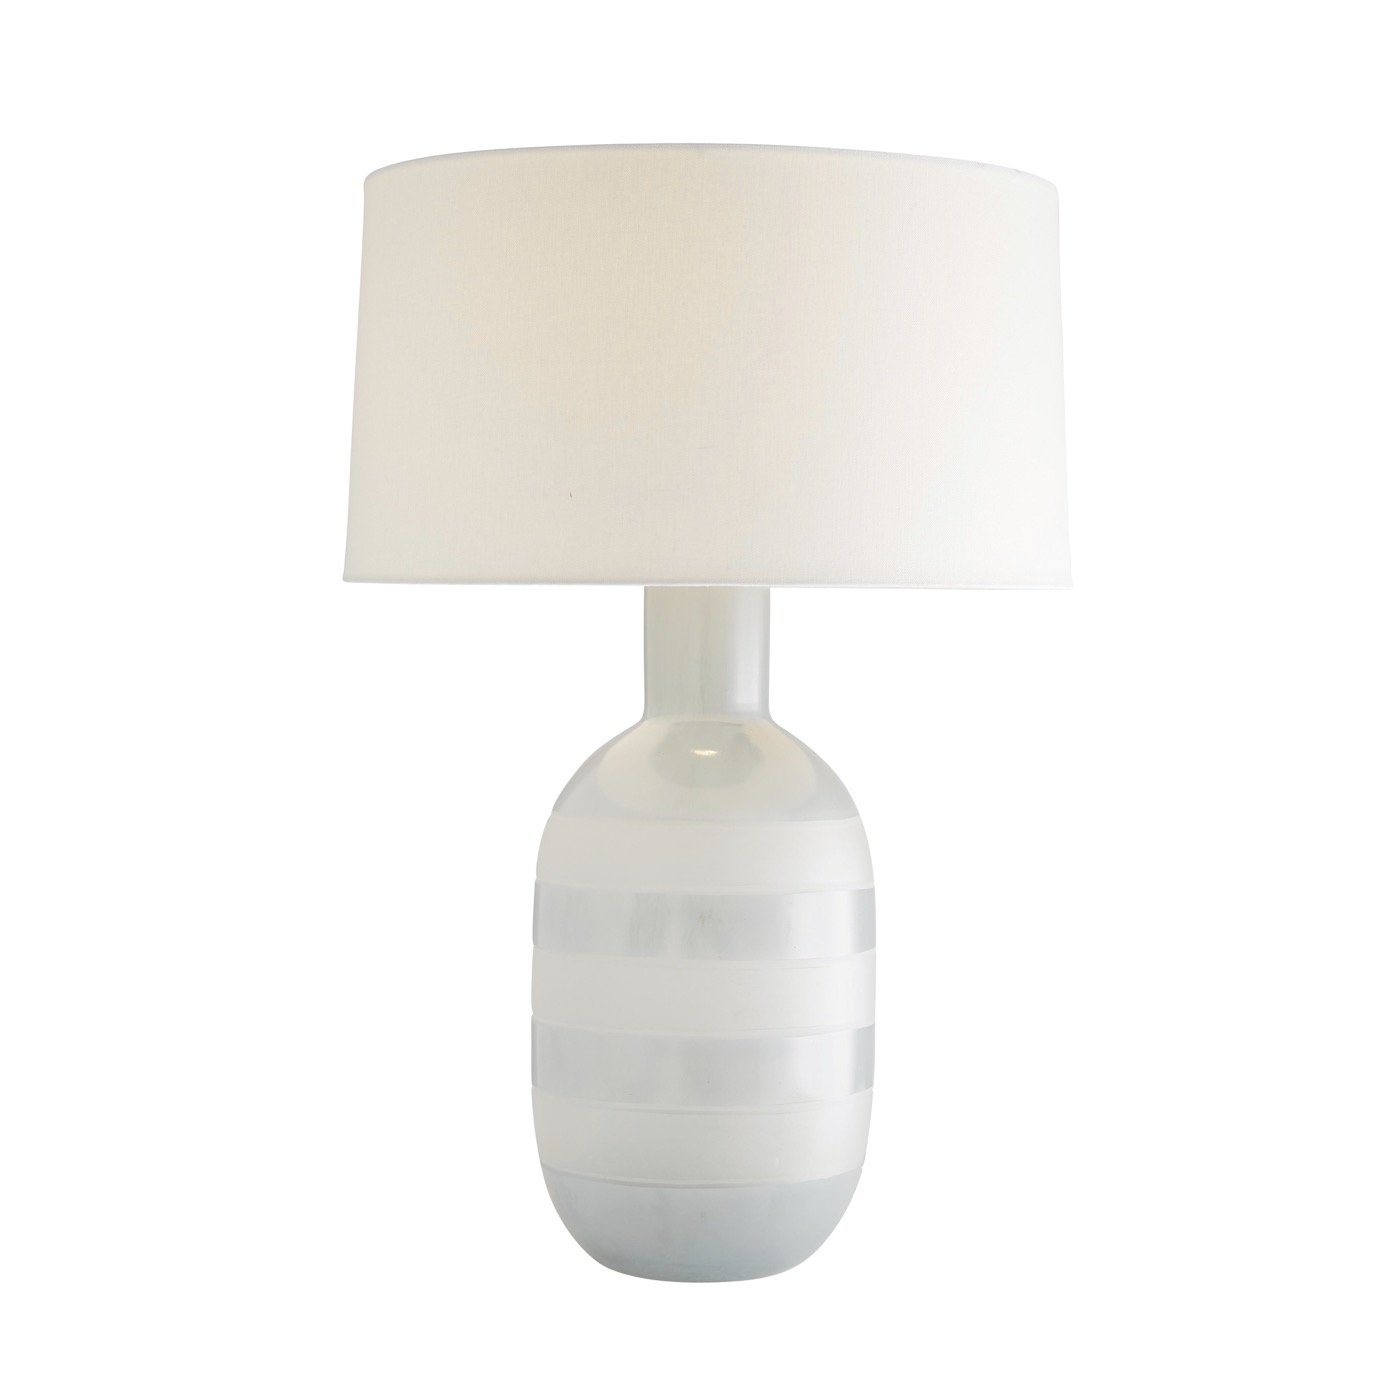 Tasha Glass Table Lamp